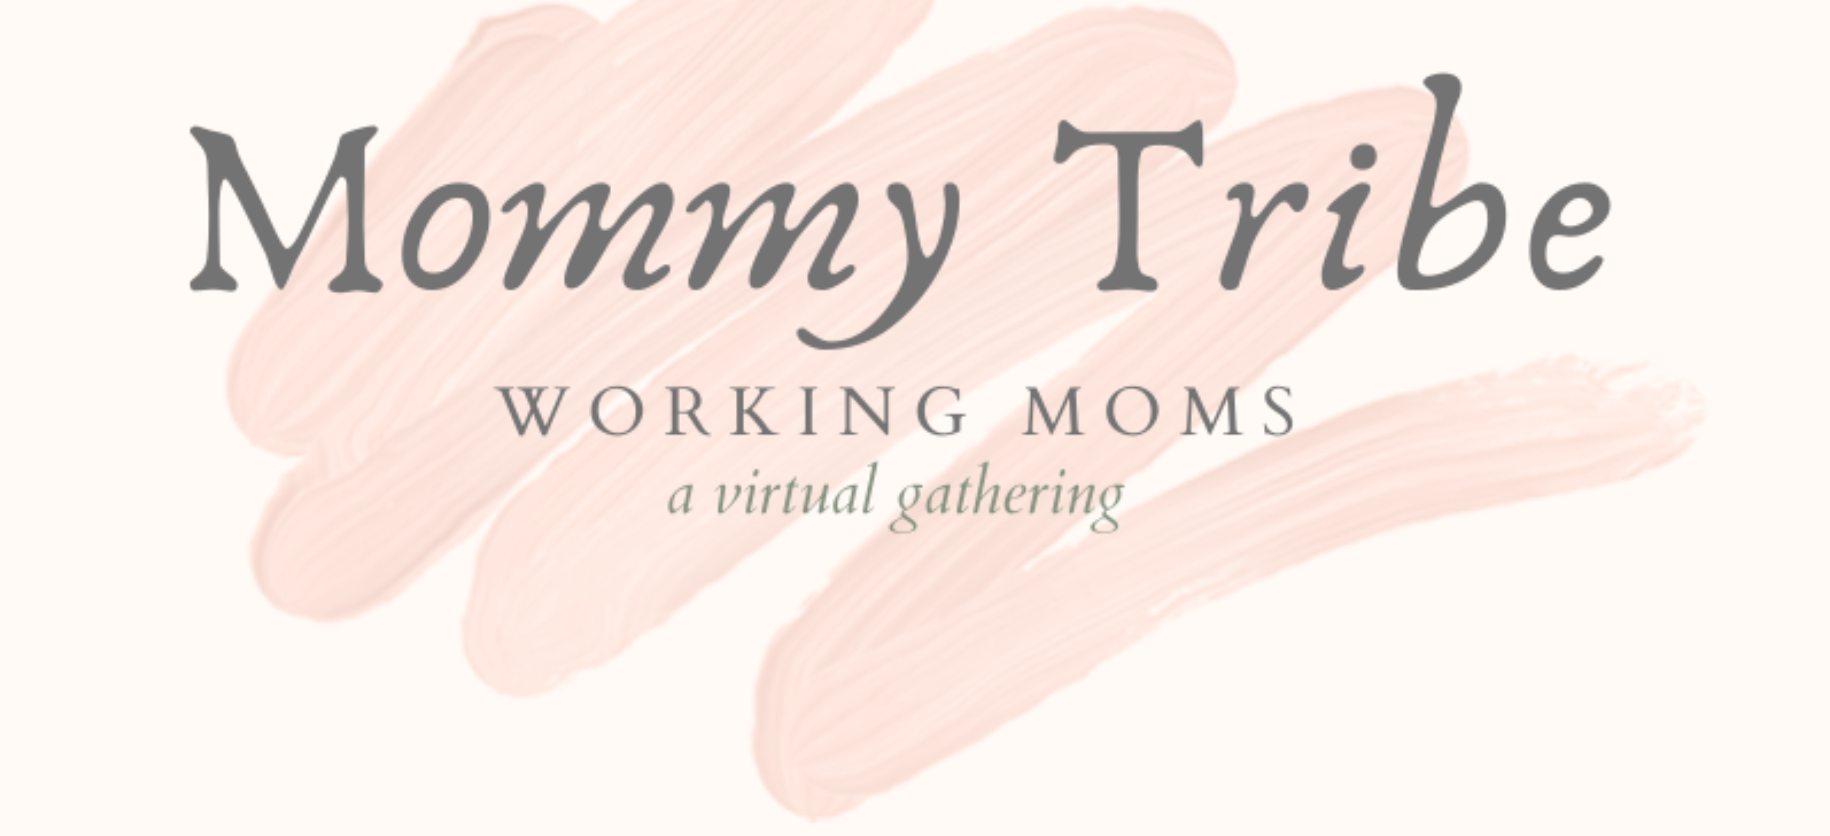 The Mommy Tribe